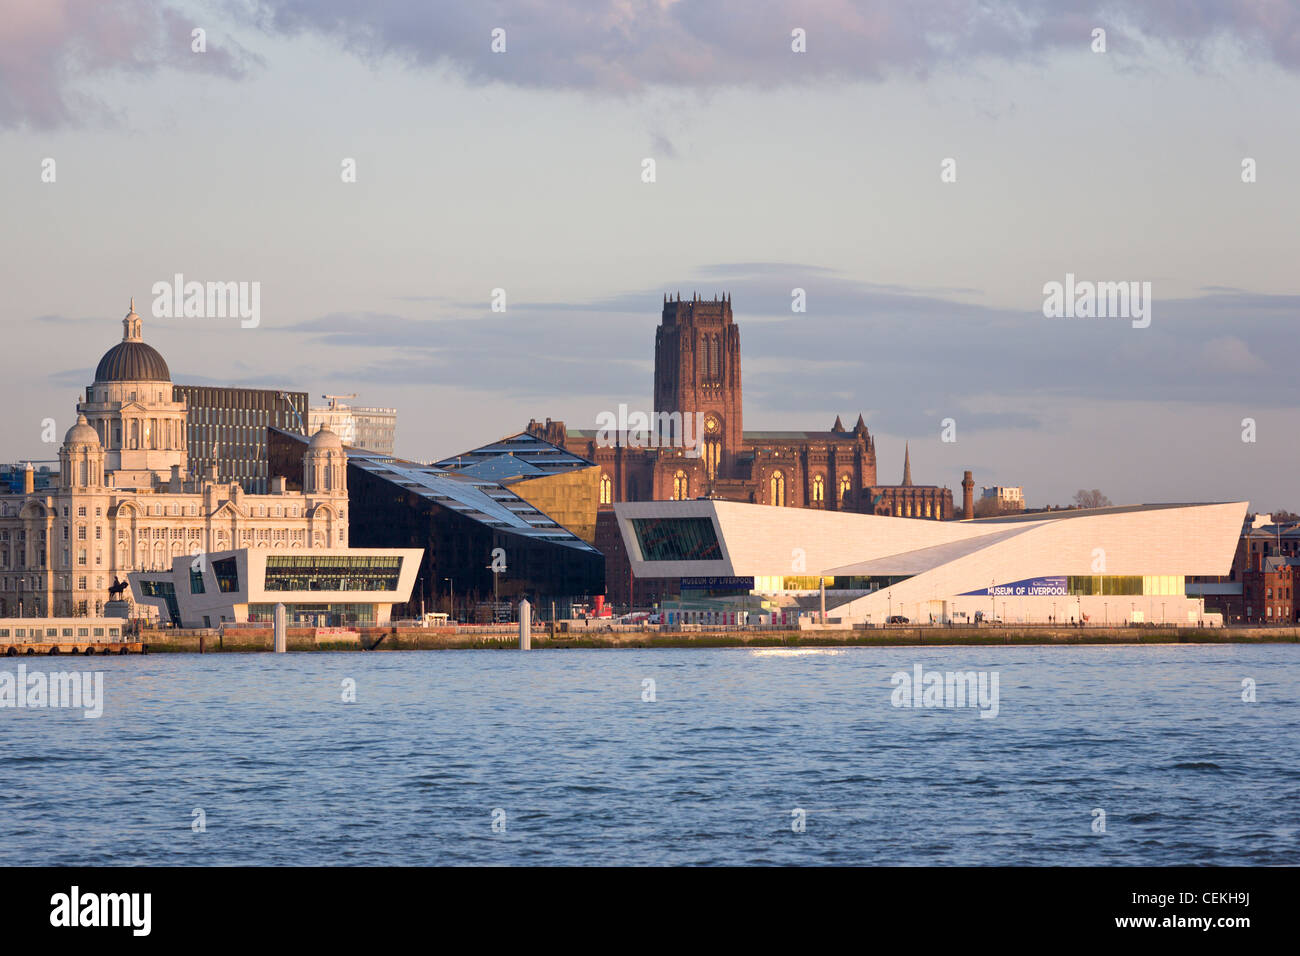 Skyline and Waterfront, Liverpool, England - Stock Image